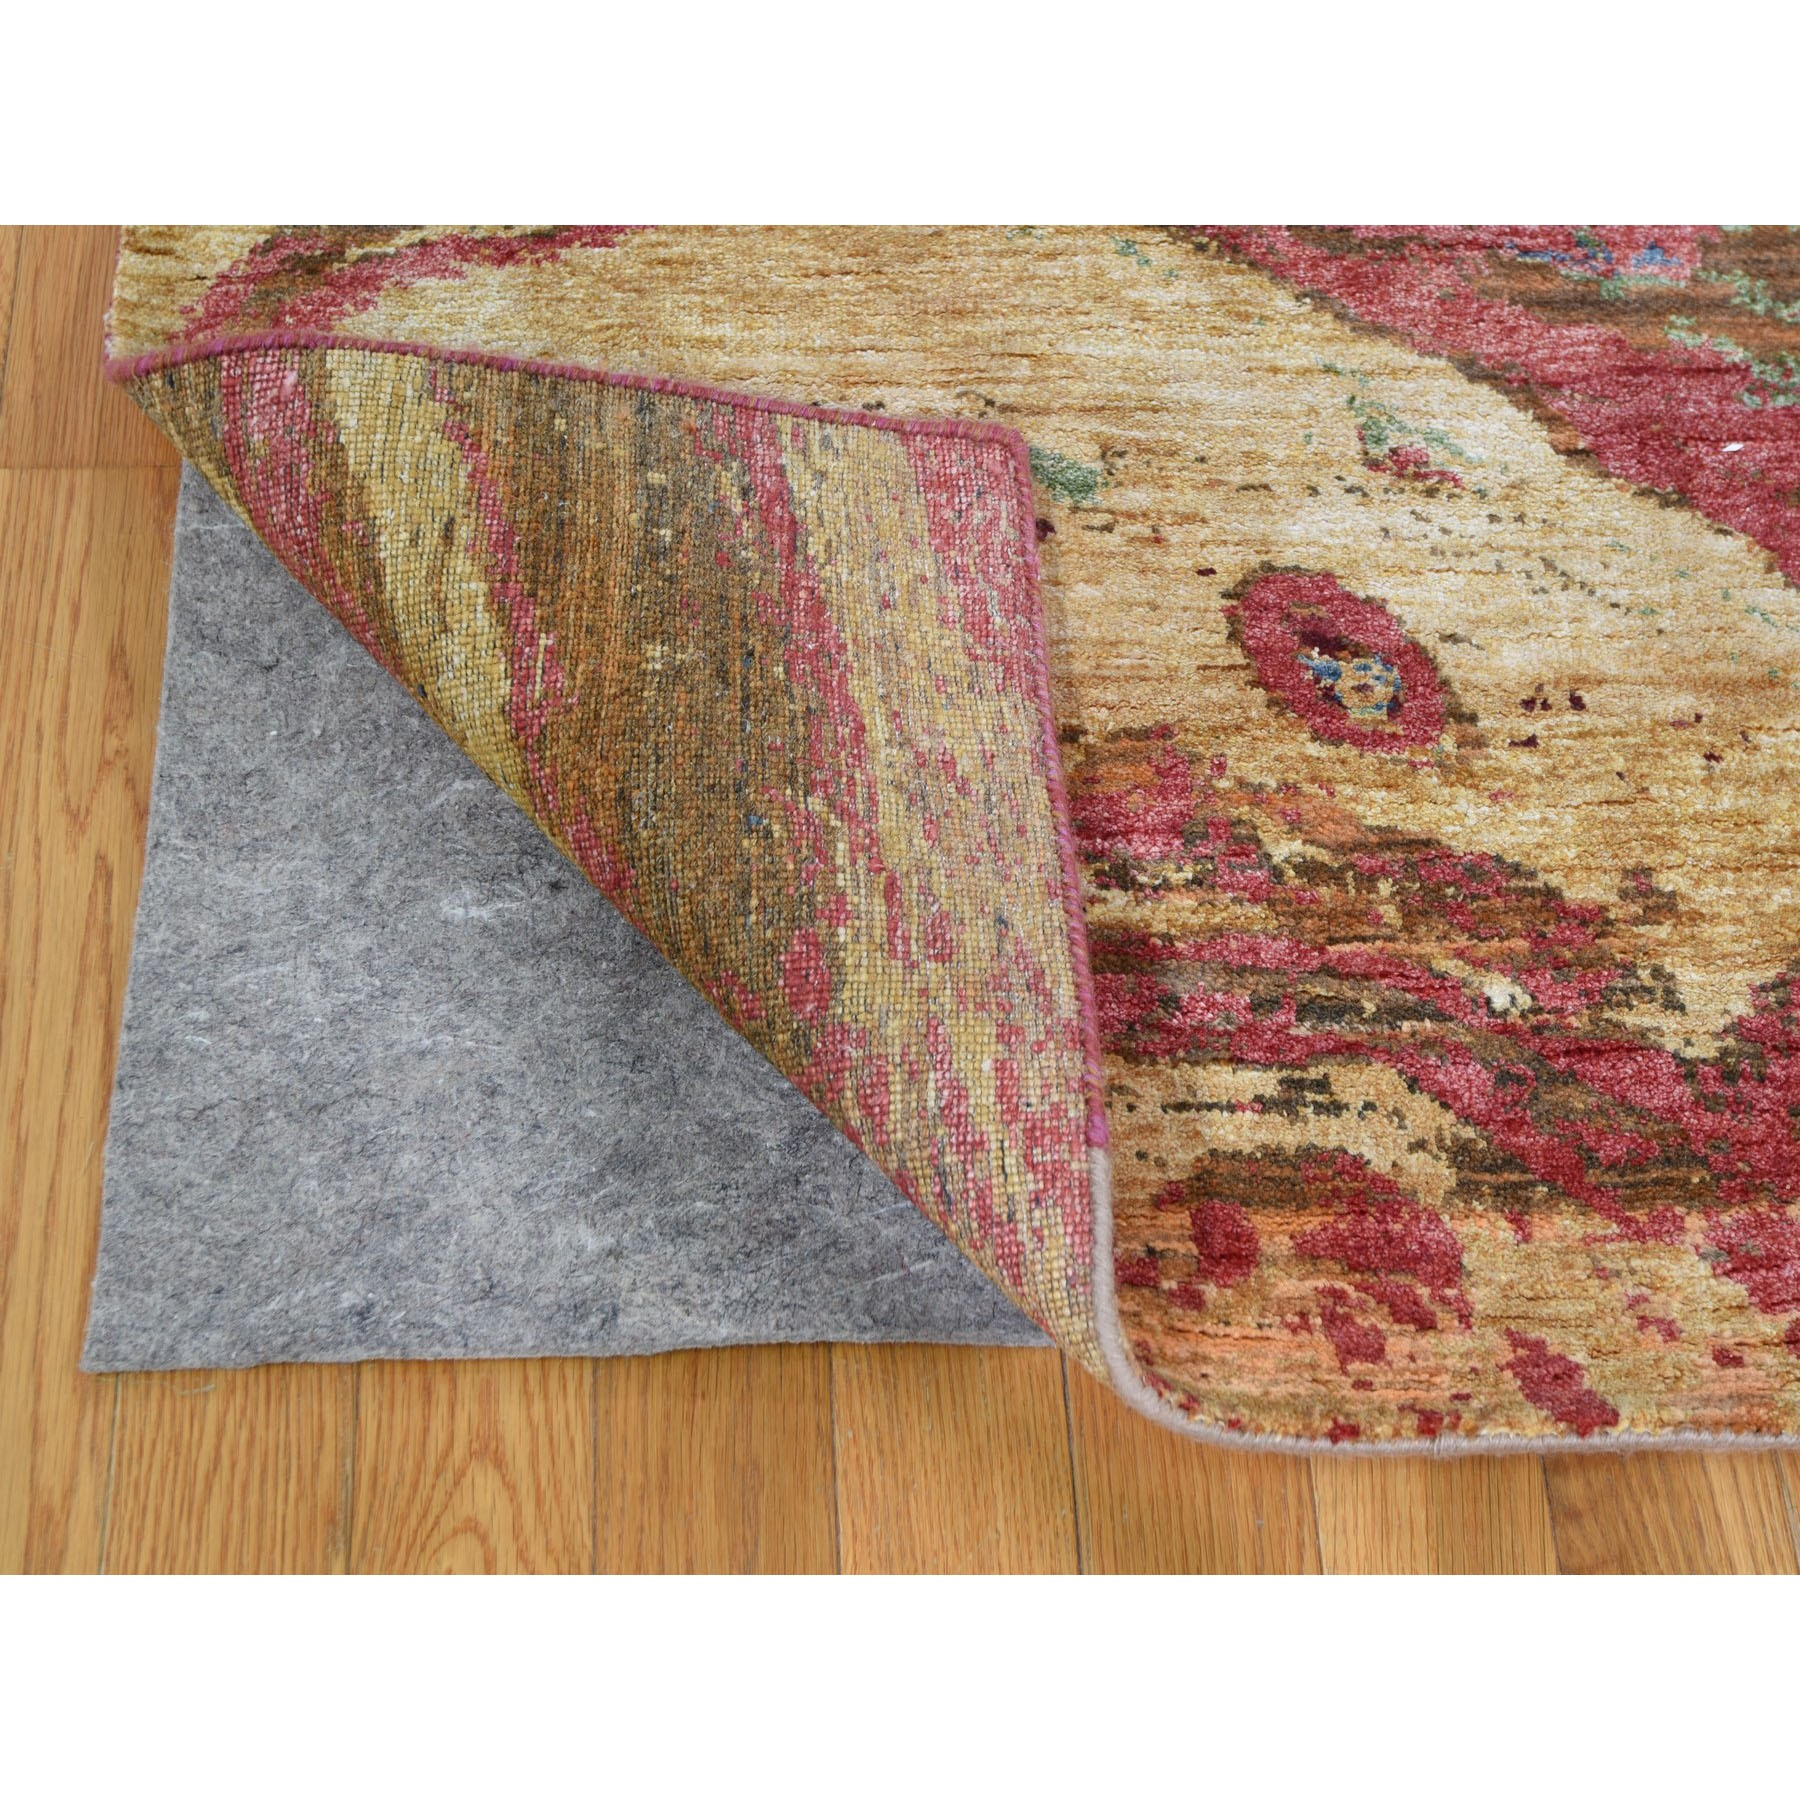 "8'x10'3"" Modern Geological Design Wool And Silk Hand Knotted Oriental Rug"